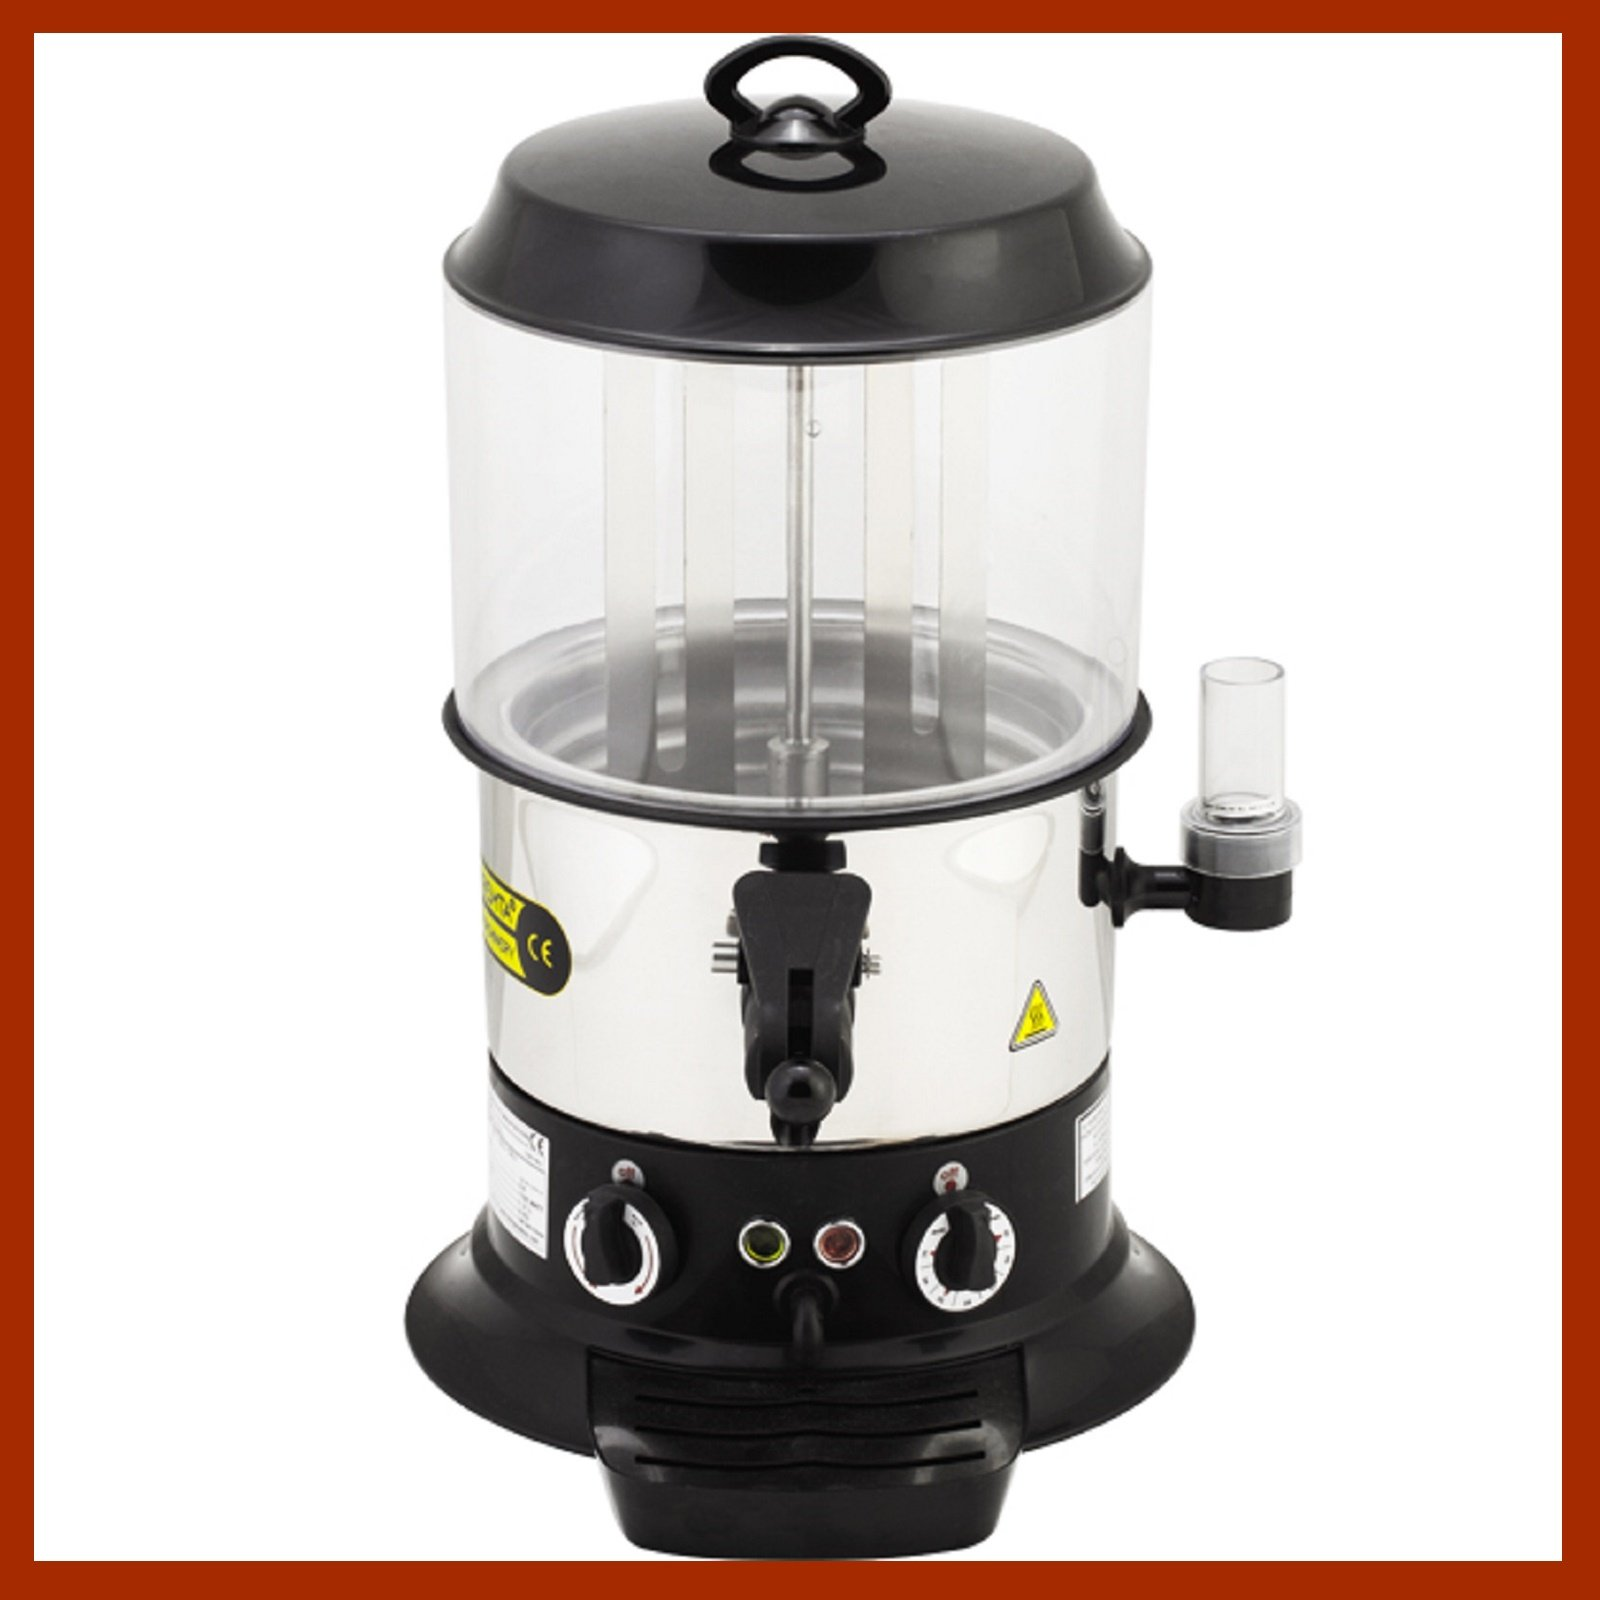 9 Liter Capacity PROFESSIONAL Commercial Hot Chocolate Beverage Maker Machine Electric Hot Chocolate Dispenser Shiny Silver and Black Color 220V